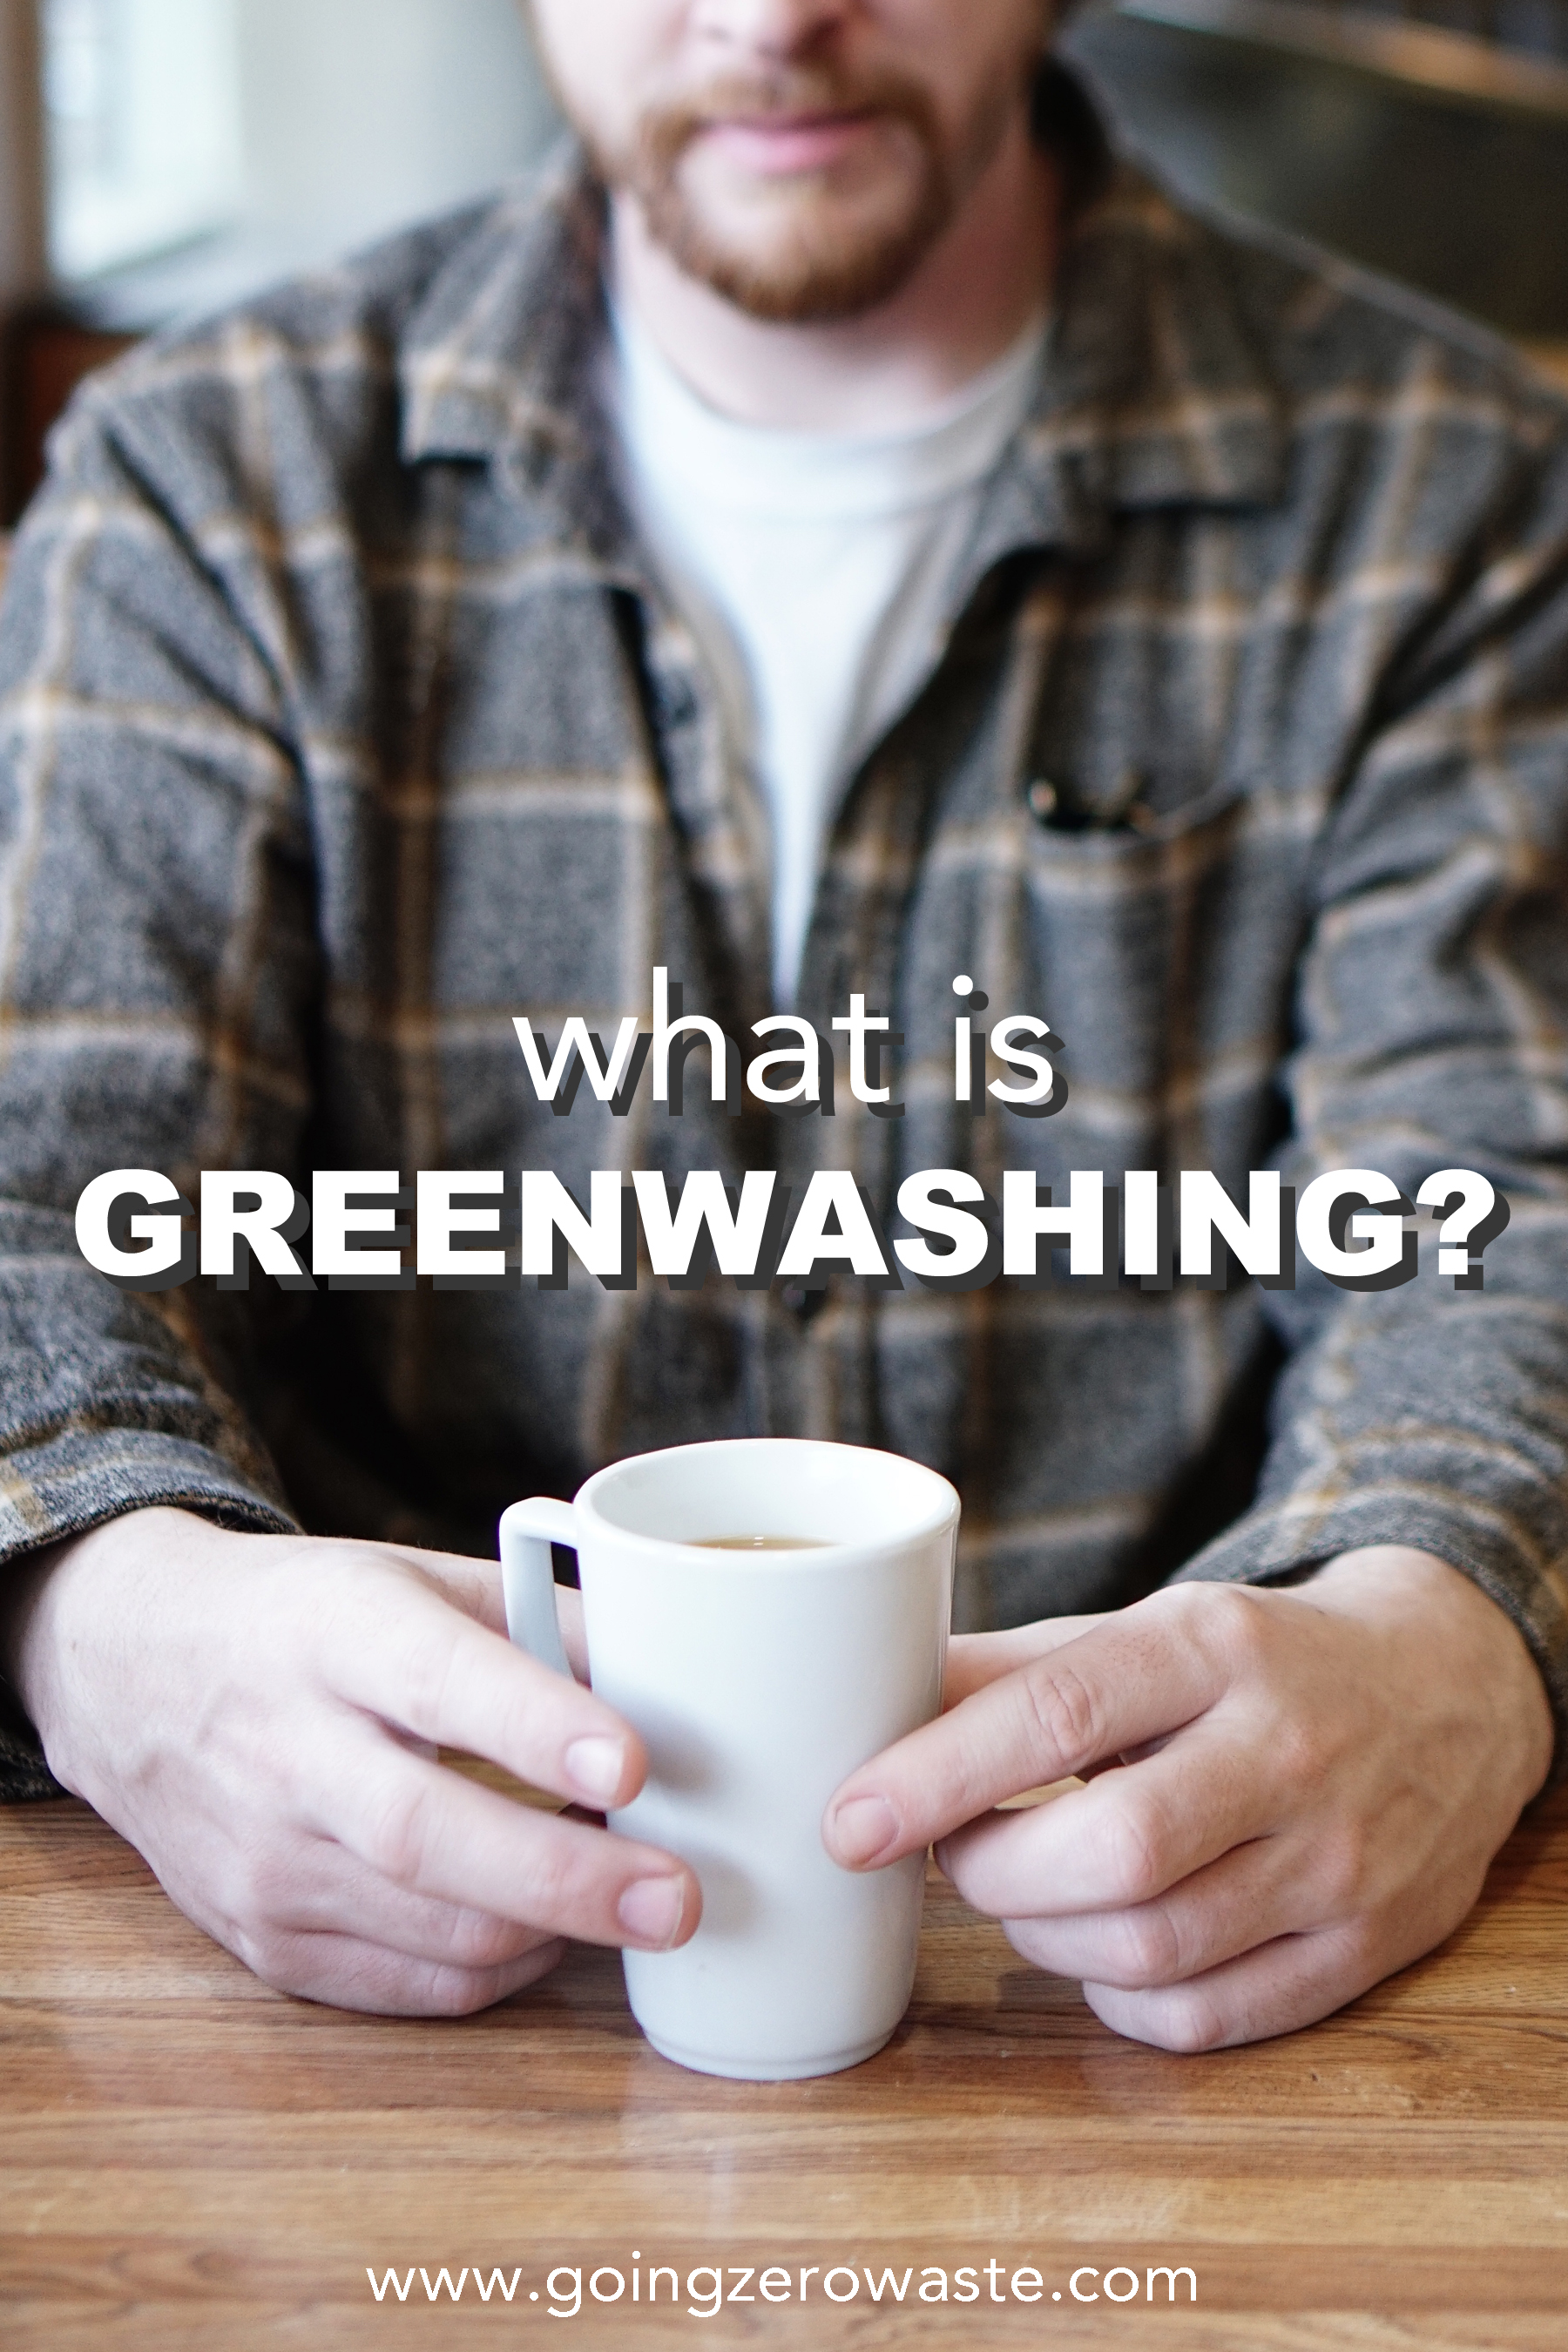 What is greenwashing from www.goingzerowaste.com